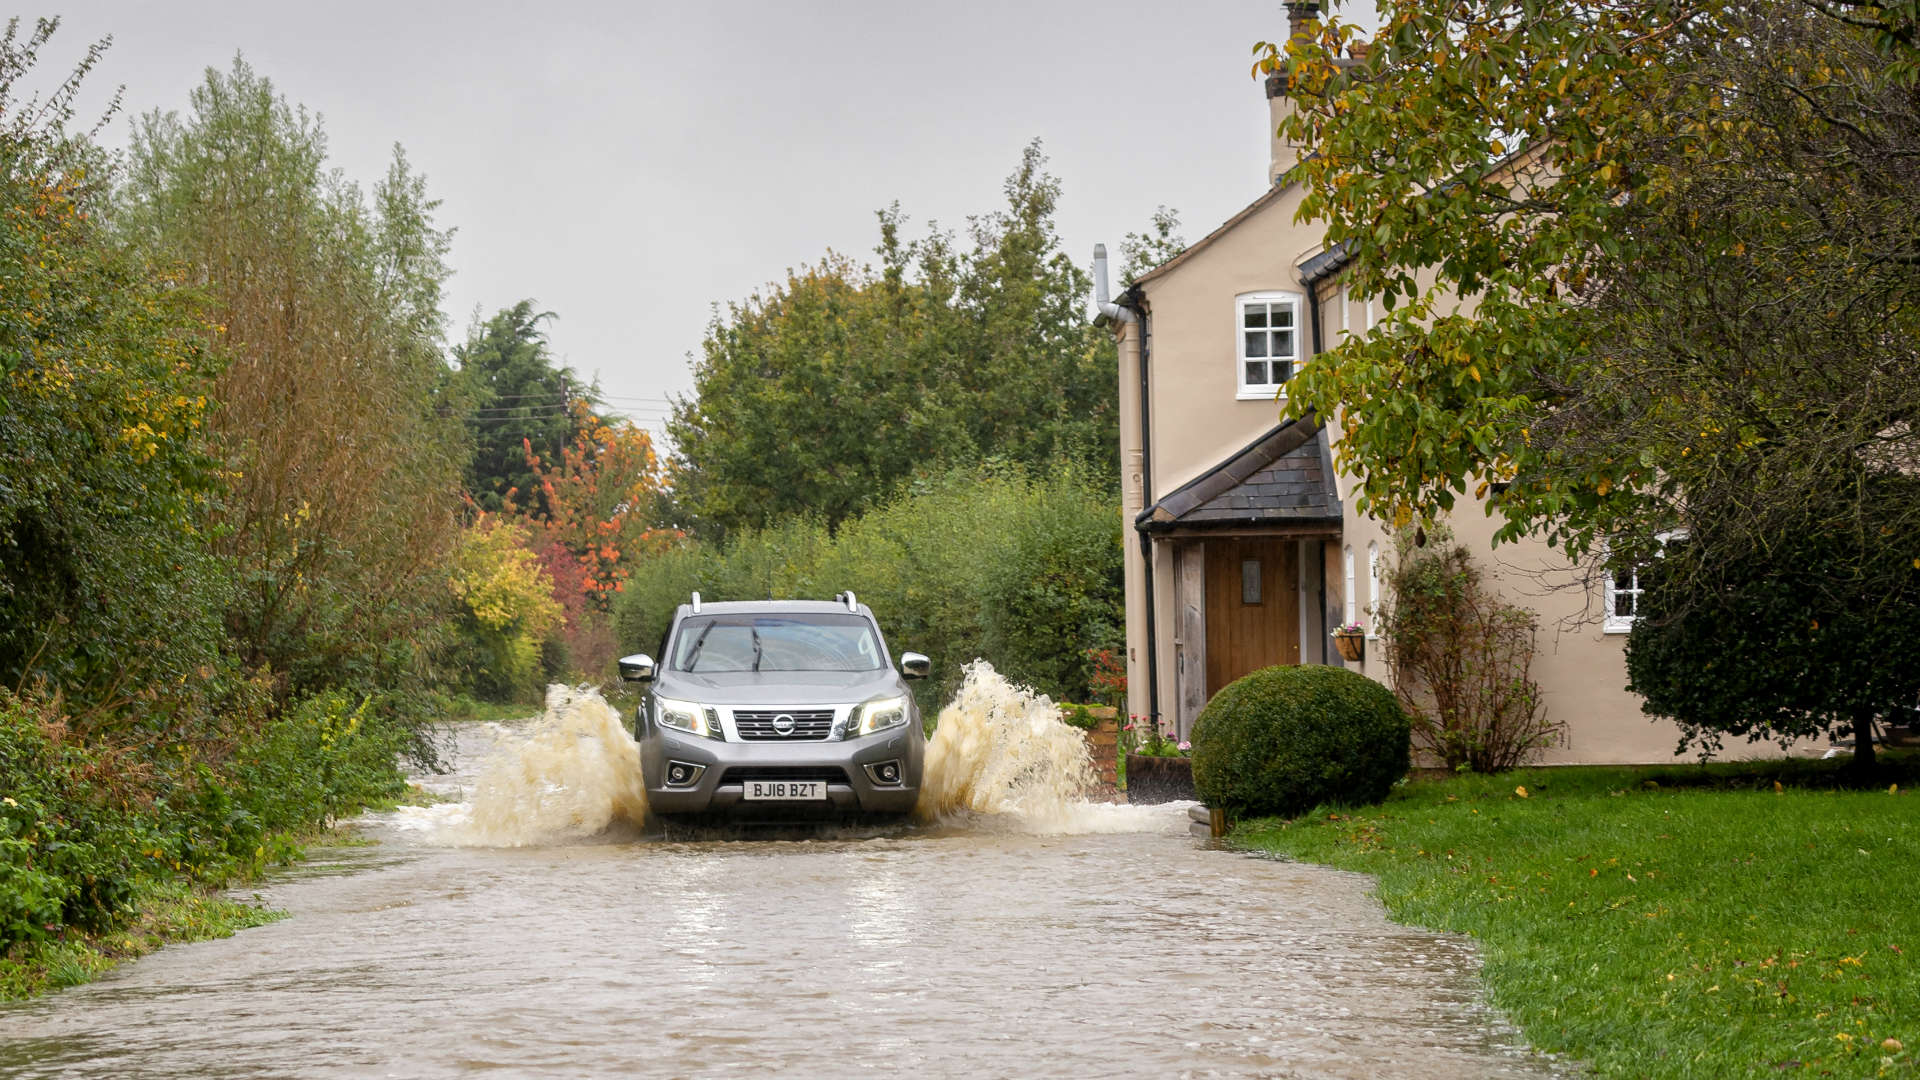 Flood water in Worcestershire